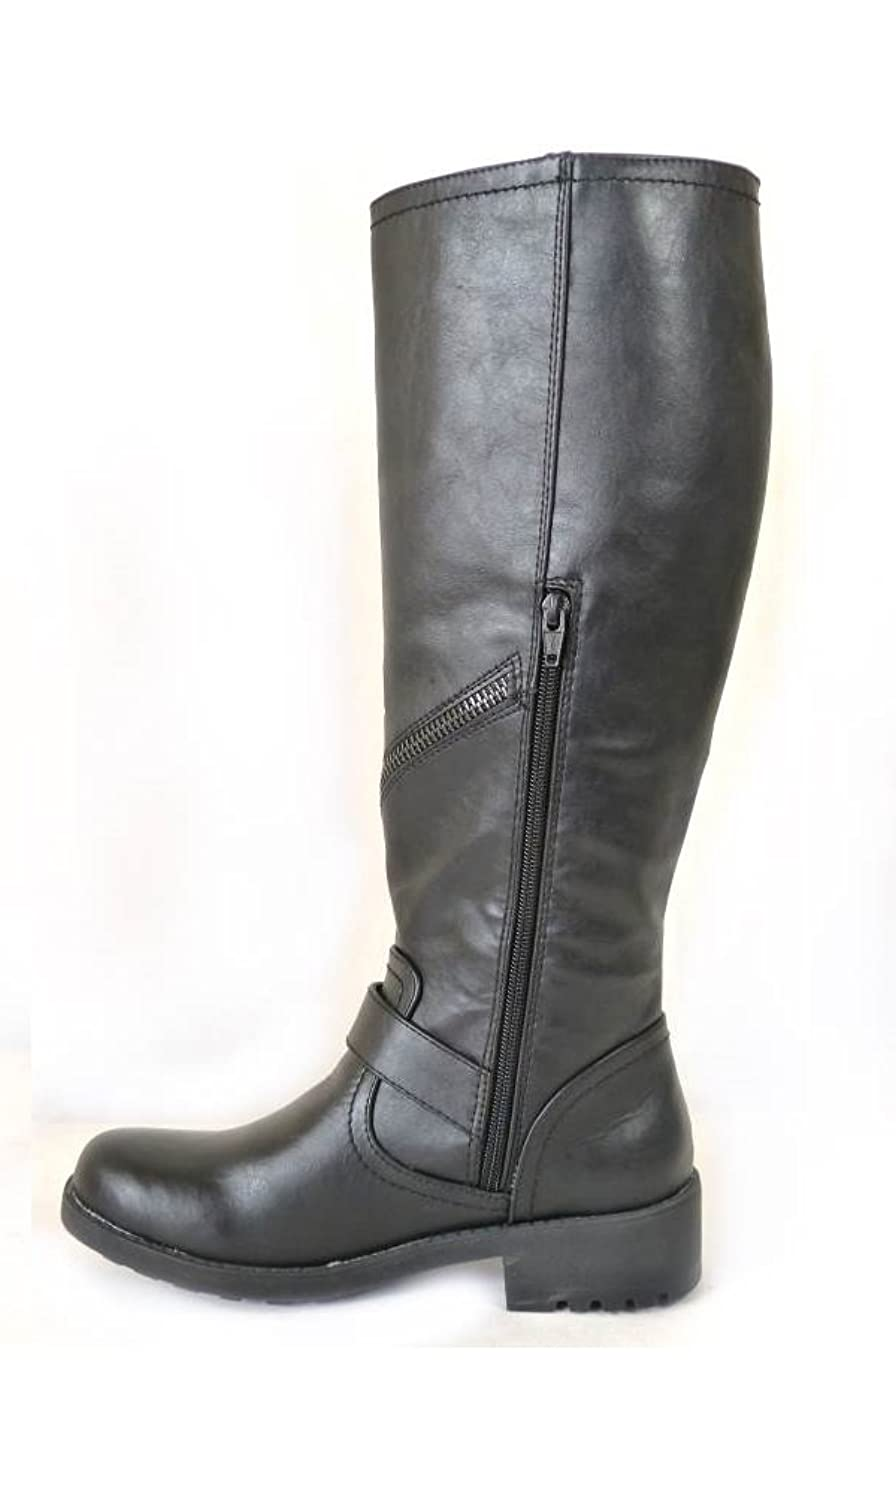 ladies womens black biker zip buckle knee length low block heel boots:  Amazon.co.uk: Shoes & Bags